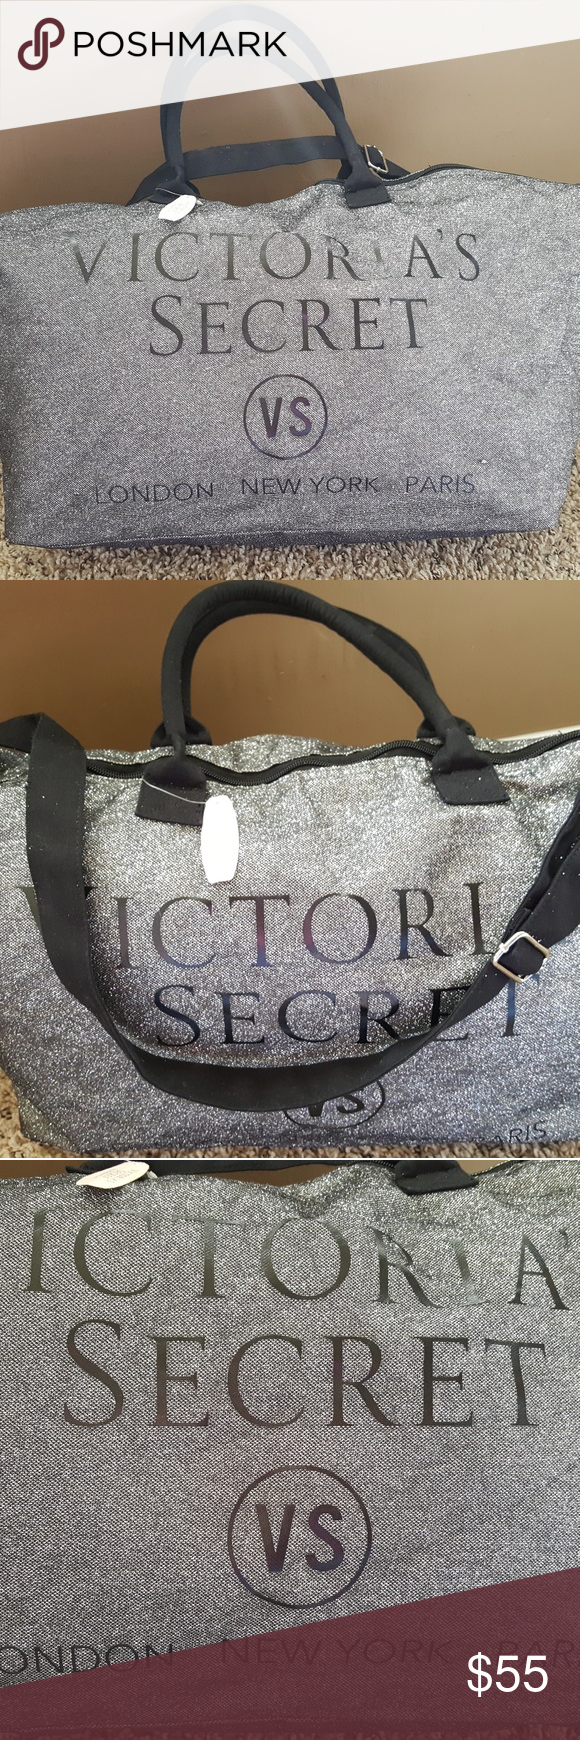 Victoria/'s Secret Limited Edition black silver Sequin clutch purse New with tag